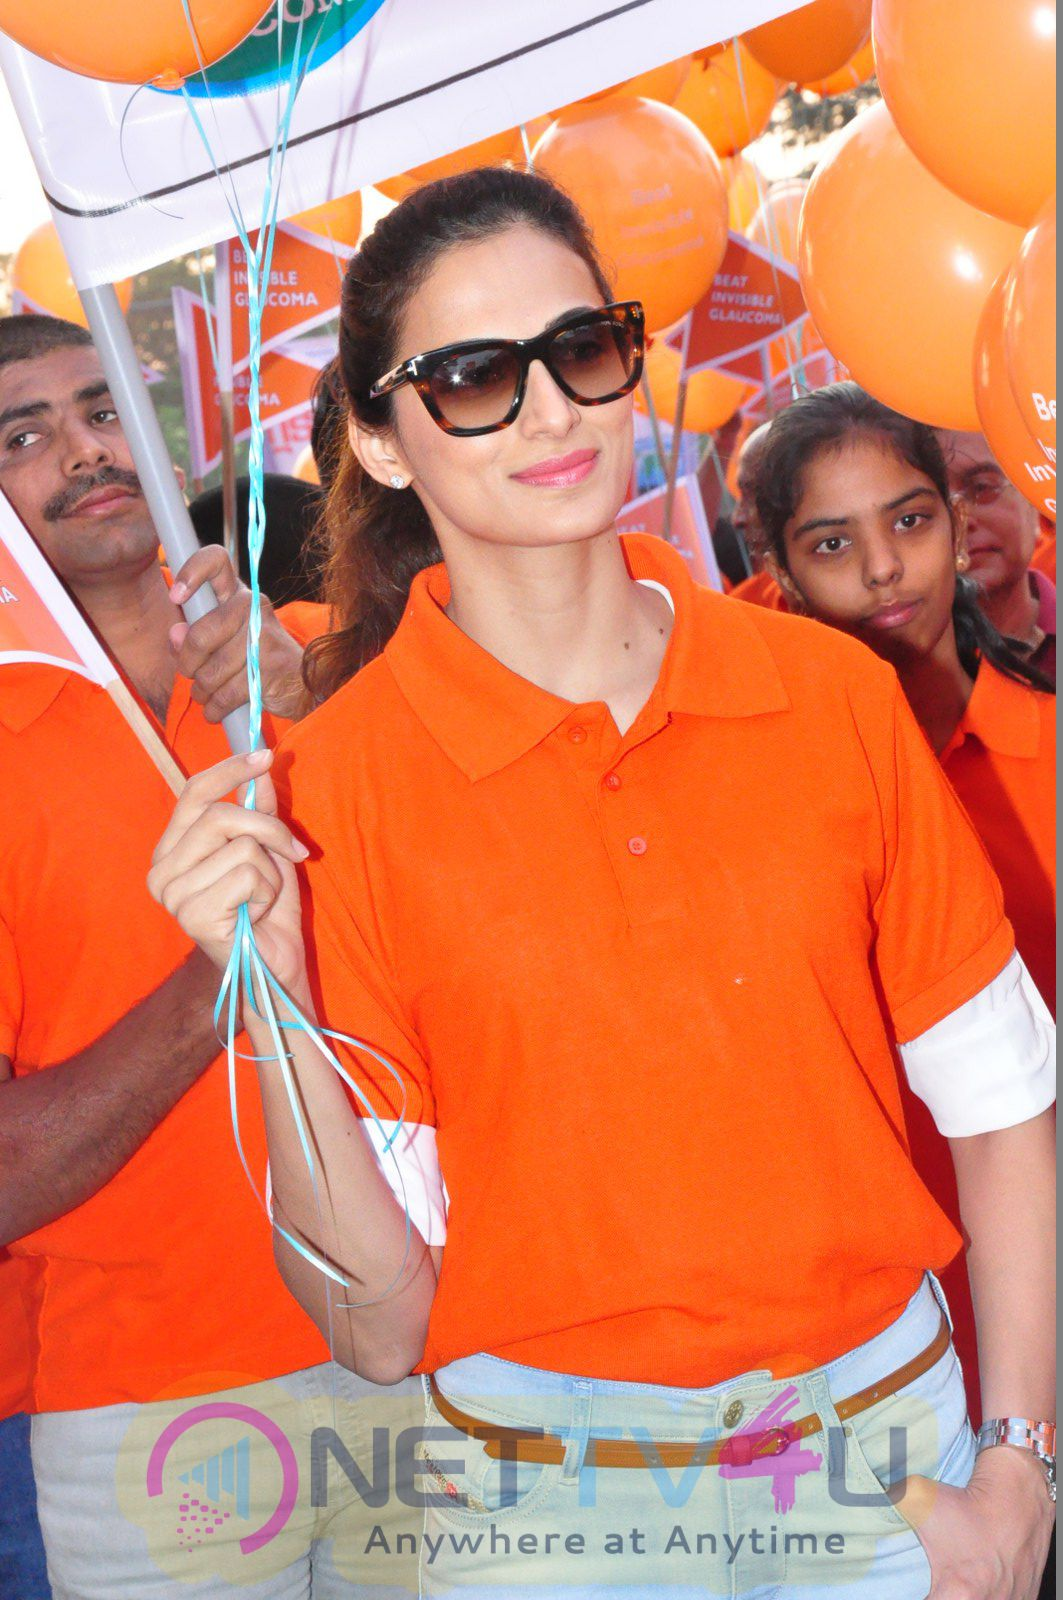 Glaucoma Walk Awareness By ShilpaReddy Photos